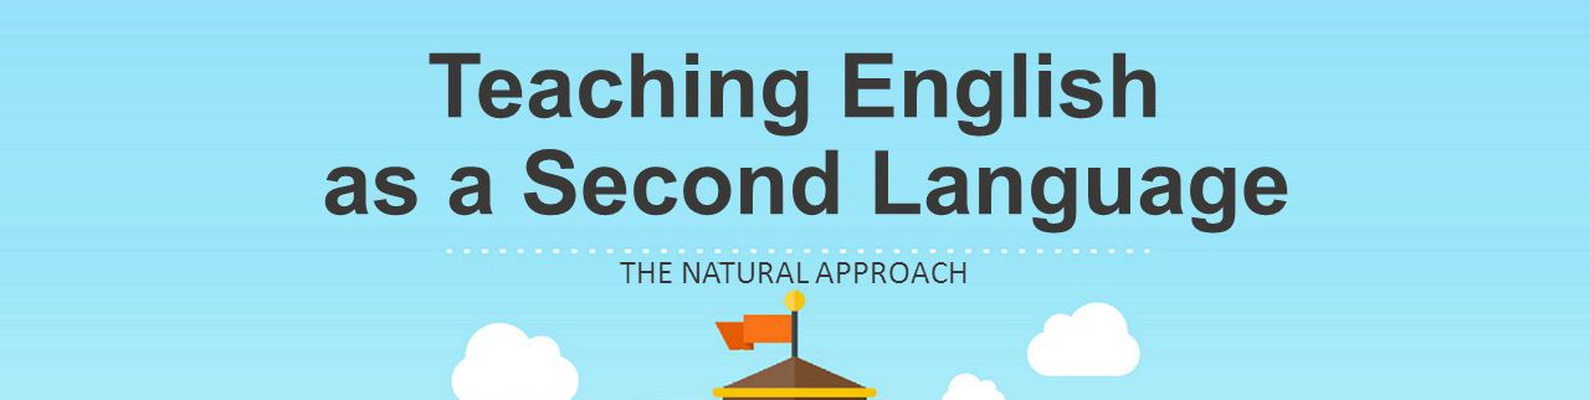 natural approach The natural approach, cooperative language learning, content-based teaching and task-based teaching are some of the current teaching methods.